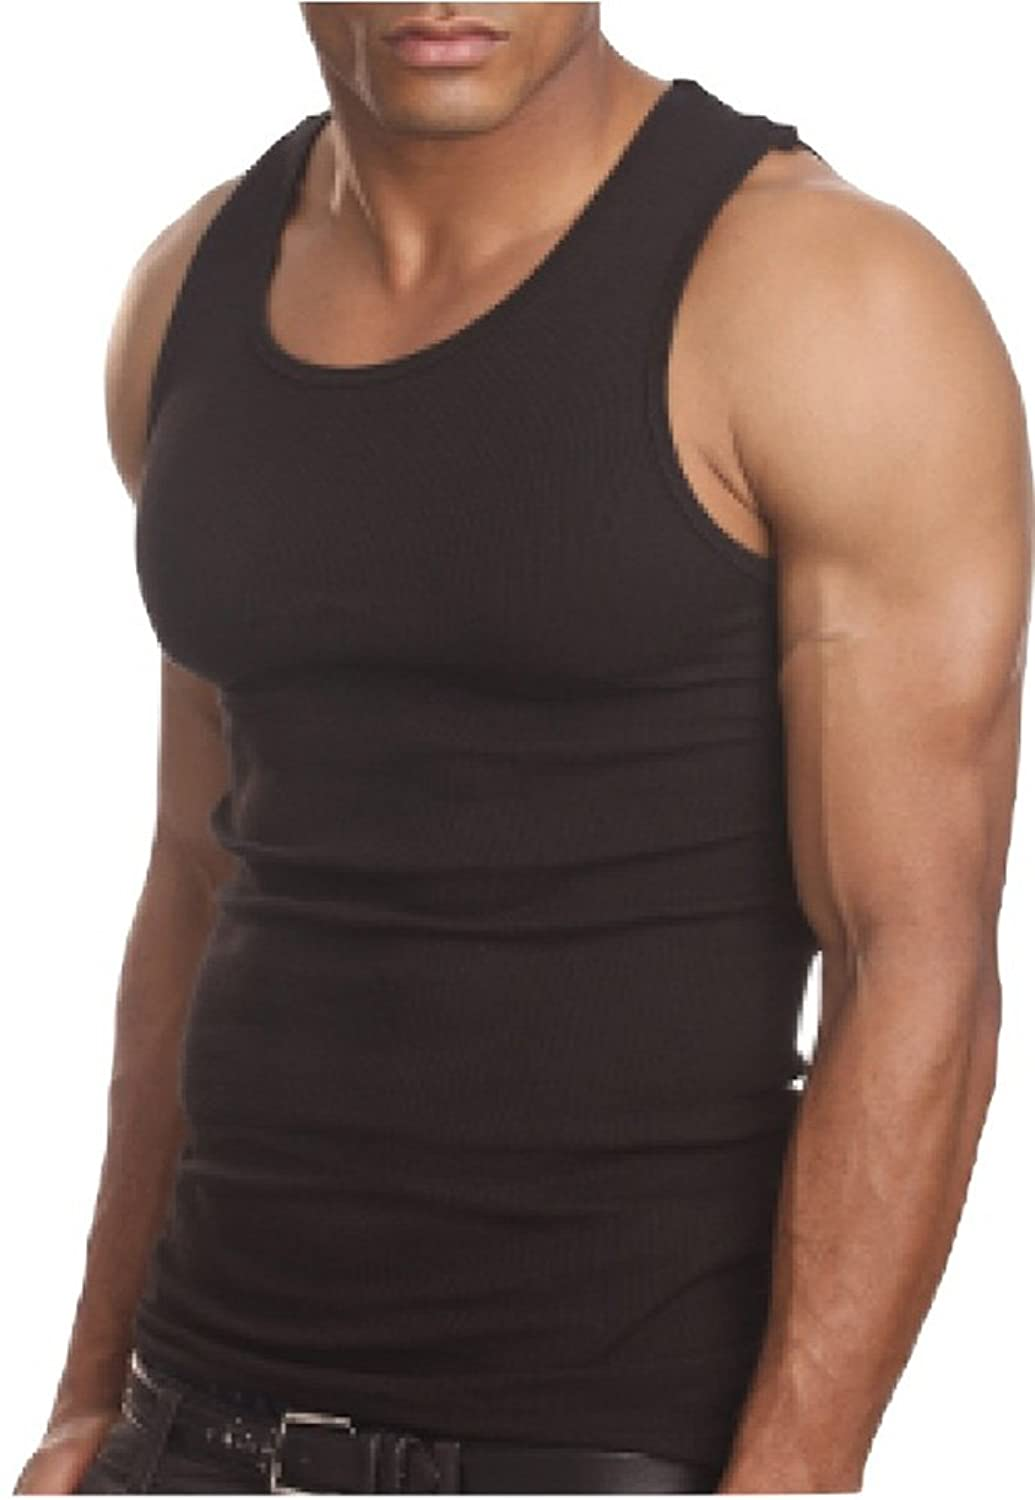 Amazon.com: ToBeInStyle Men's A-Shirt Tank Top Muscle Shirt: Clothing